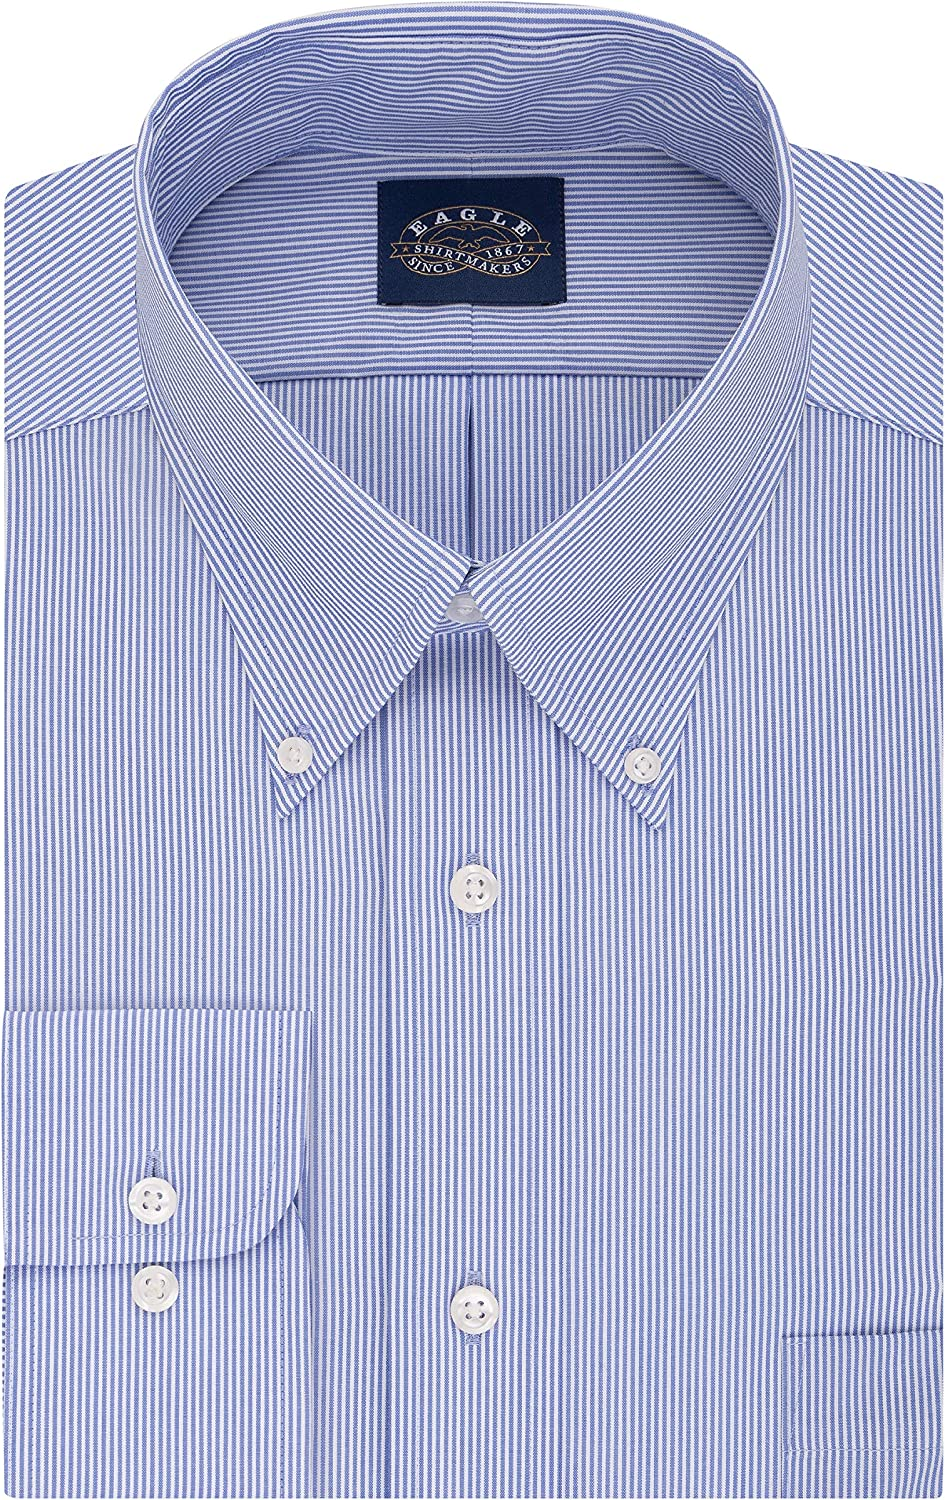 Eagle Mens Tall Fit Dress Shirts Non Iron Stretch Collar Stripe Dress Shirt Big and Tall